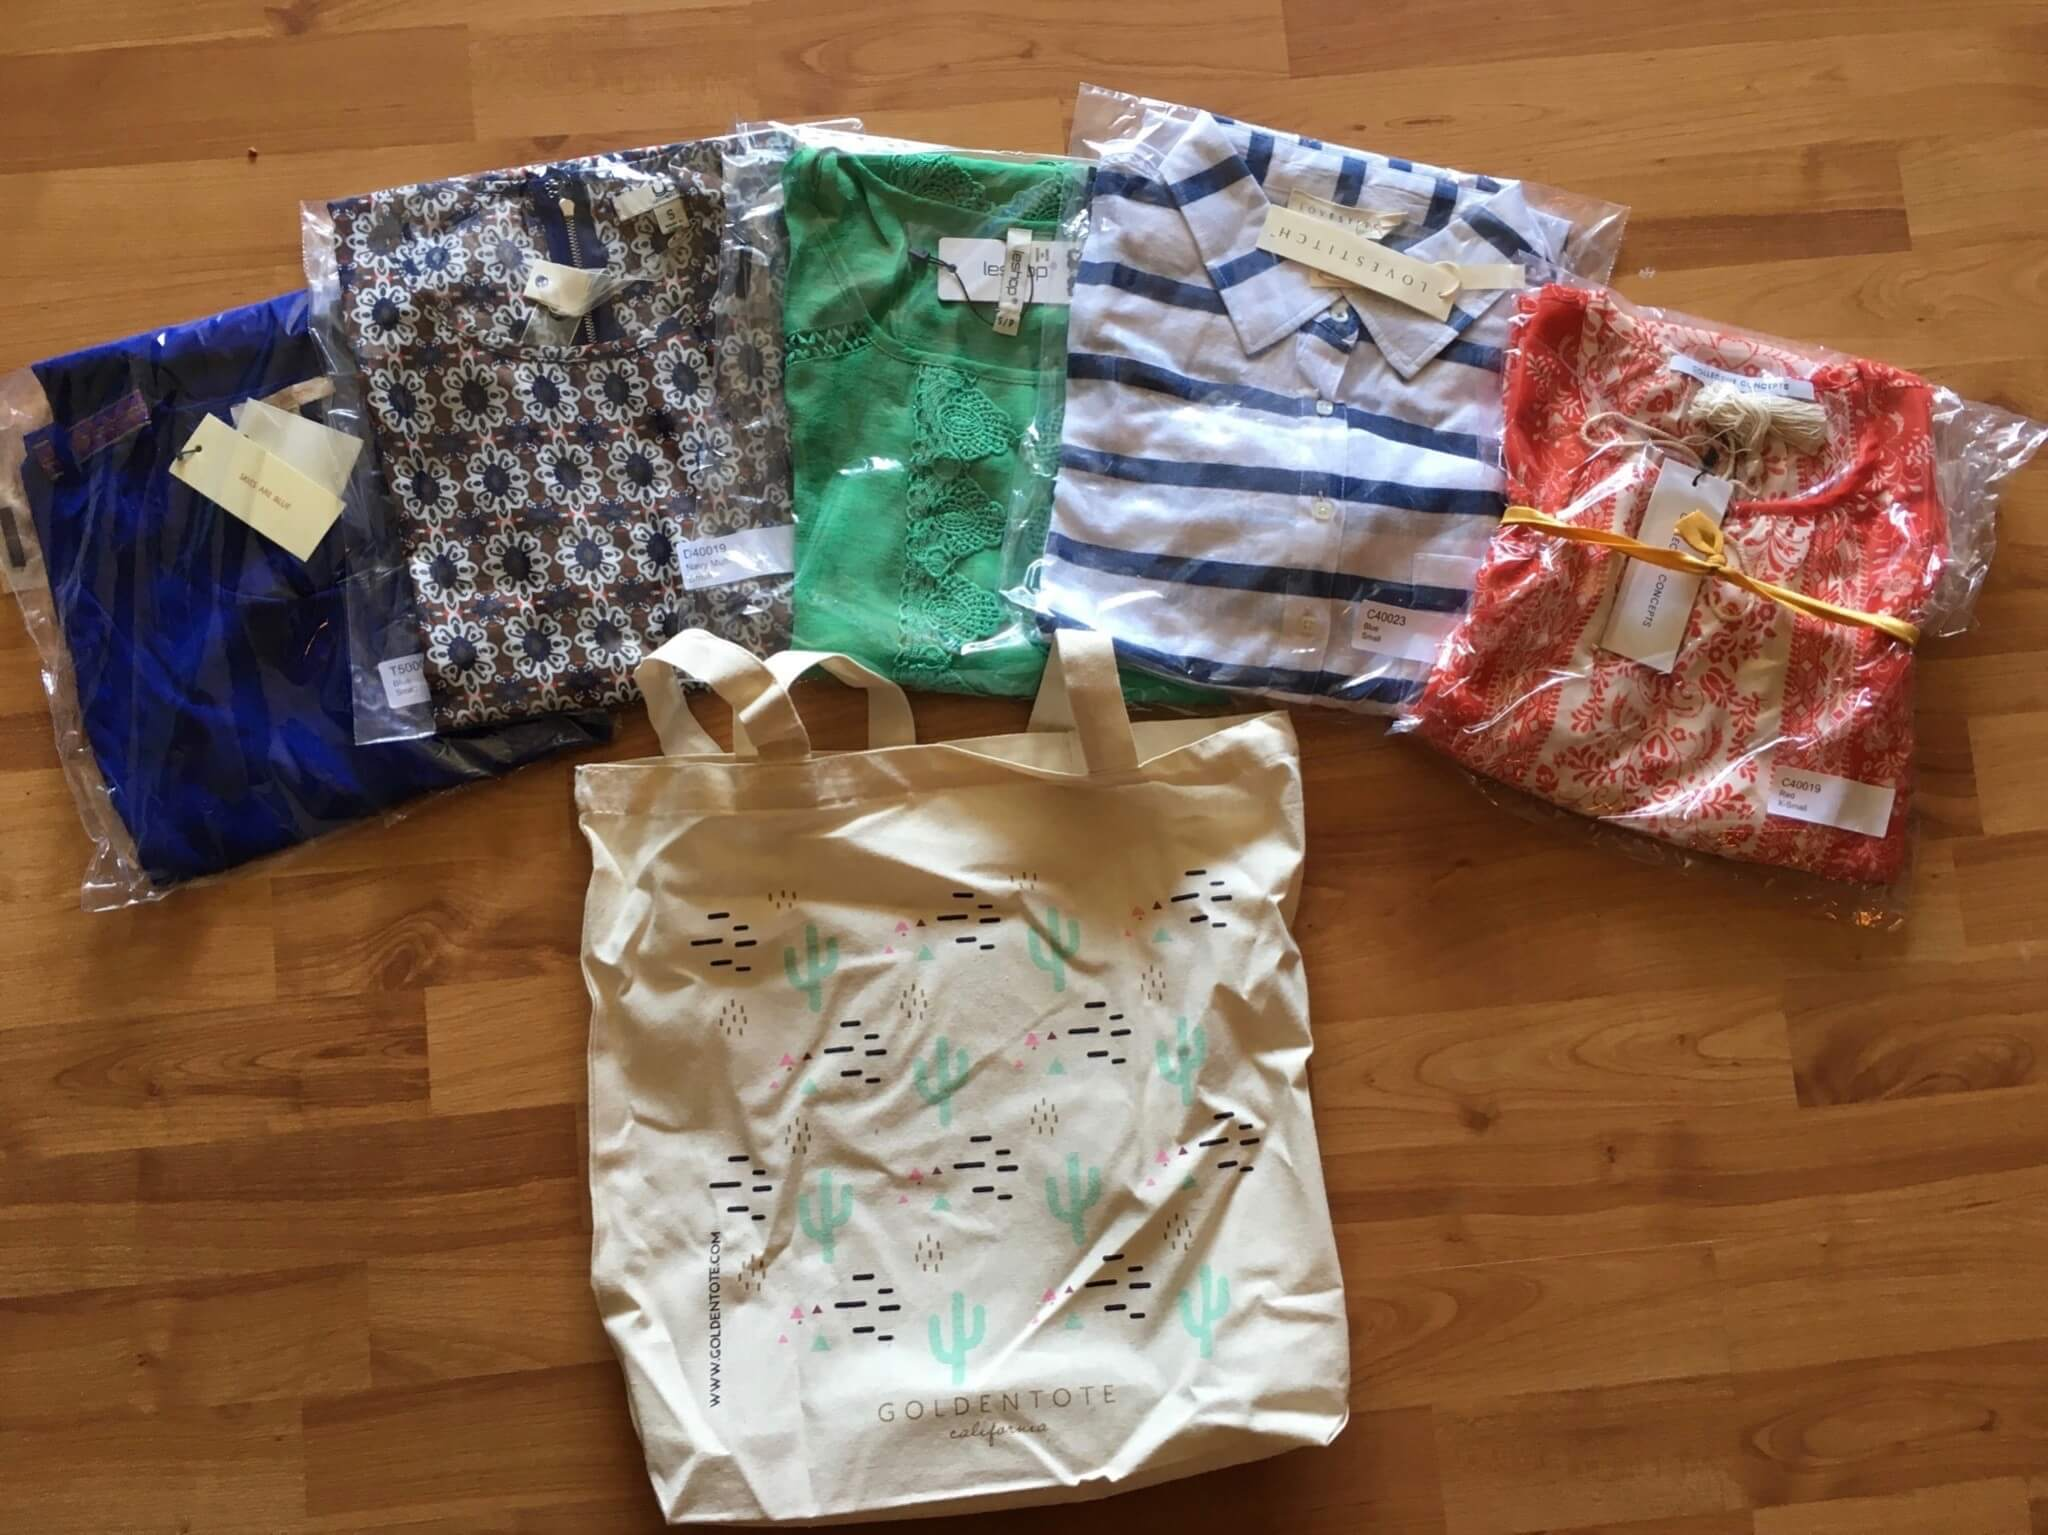 Golden Tote $149 May 2016 review